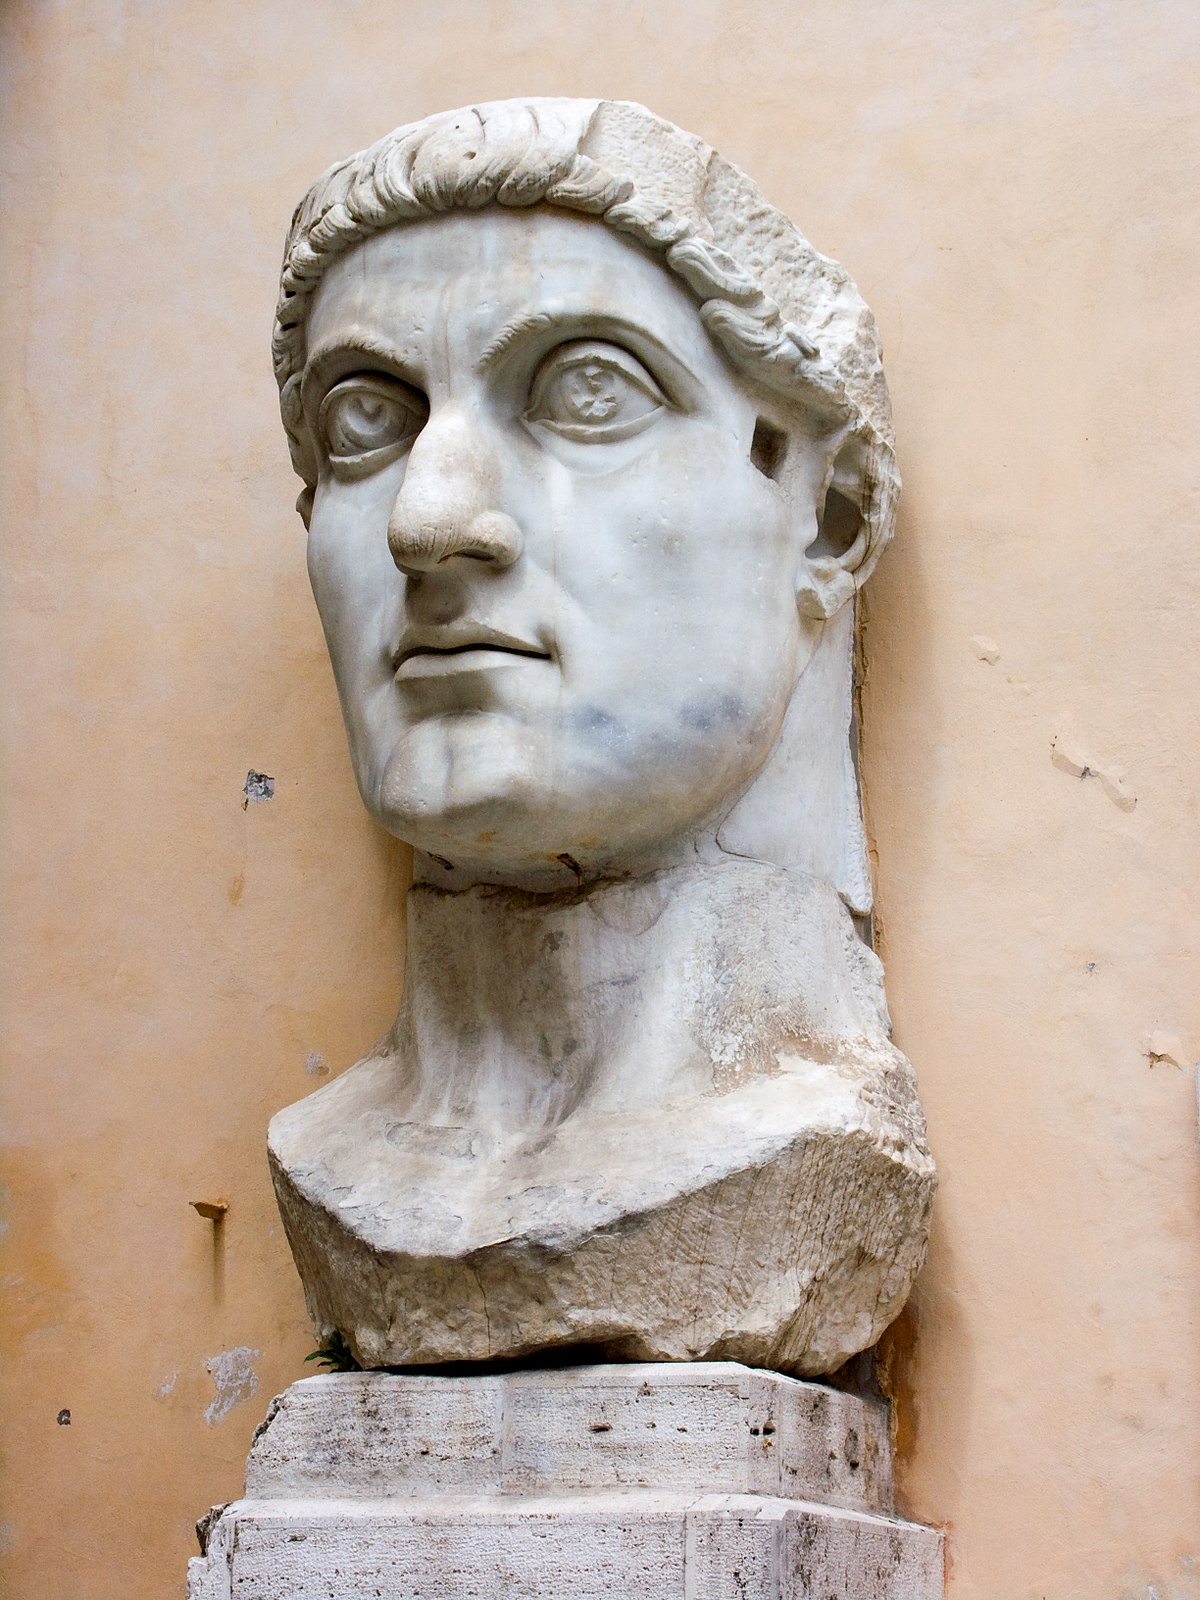 The head of a former colossal statue of Constantine at the    Capitoline Museums   , measuring more than 2 meters; the original statue of marble was acrolithic with the torso consisting of a cuirass in bronze